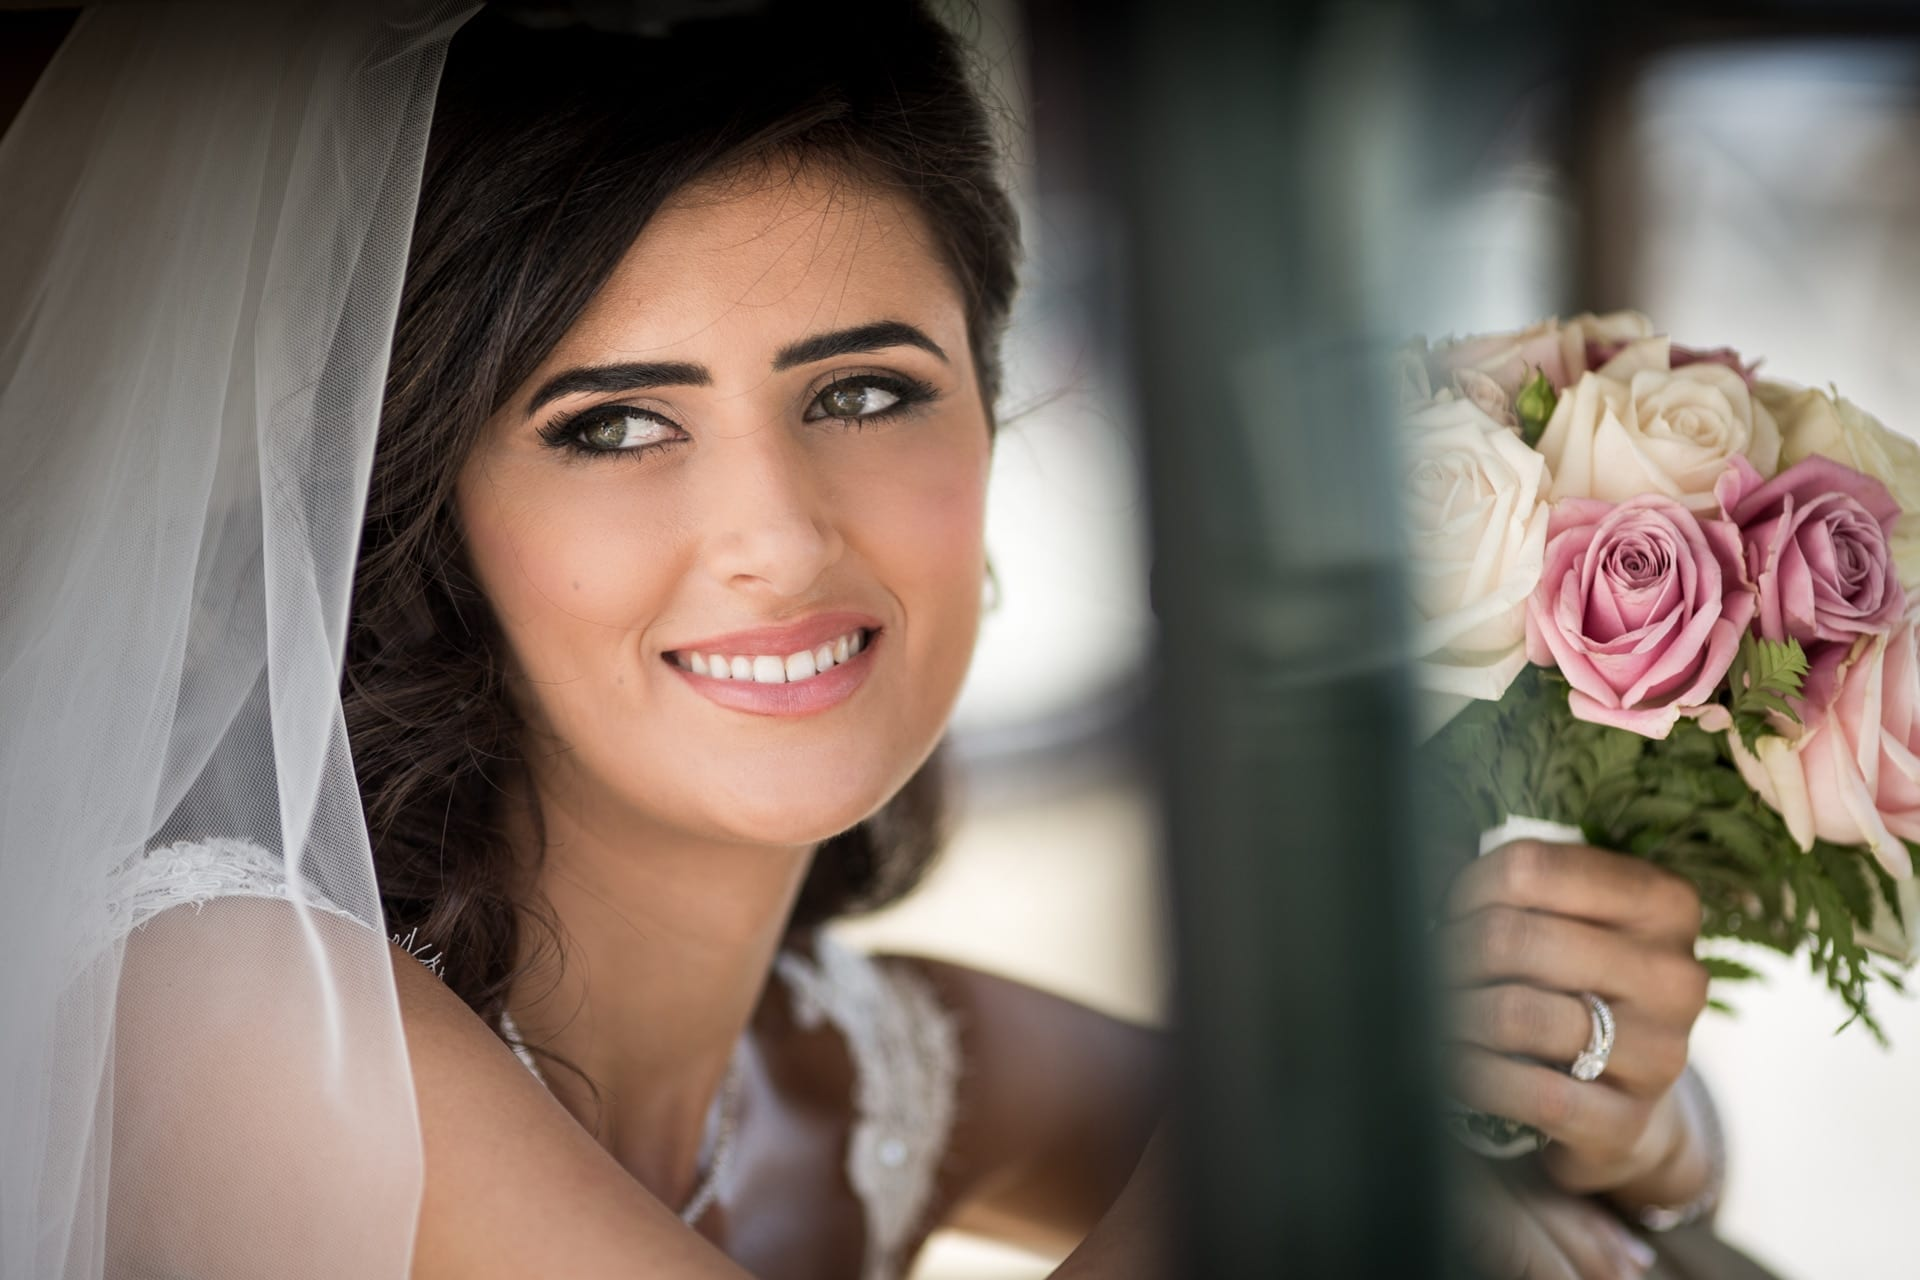 https://righiphotography-com.s3.eu-central-1.amazonaws.com/wp-content/uploads/2020/02/02183346/Weddin-Photo-Classic-Style-Studio-Fotografico-Righi-RIGHI-25.jpg